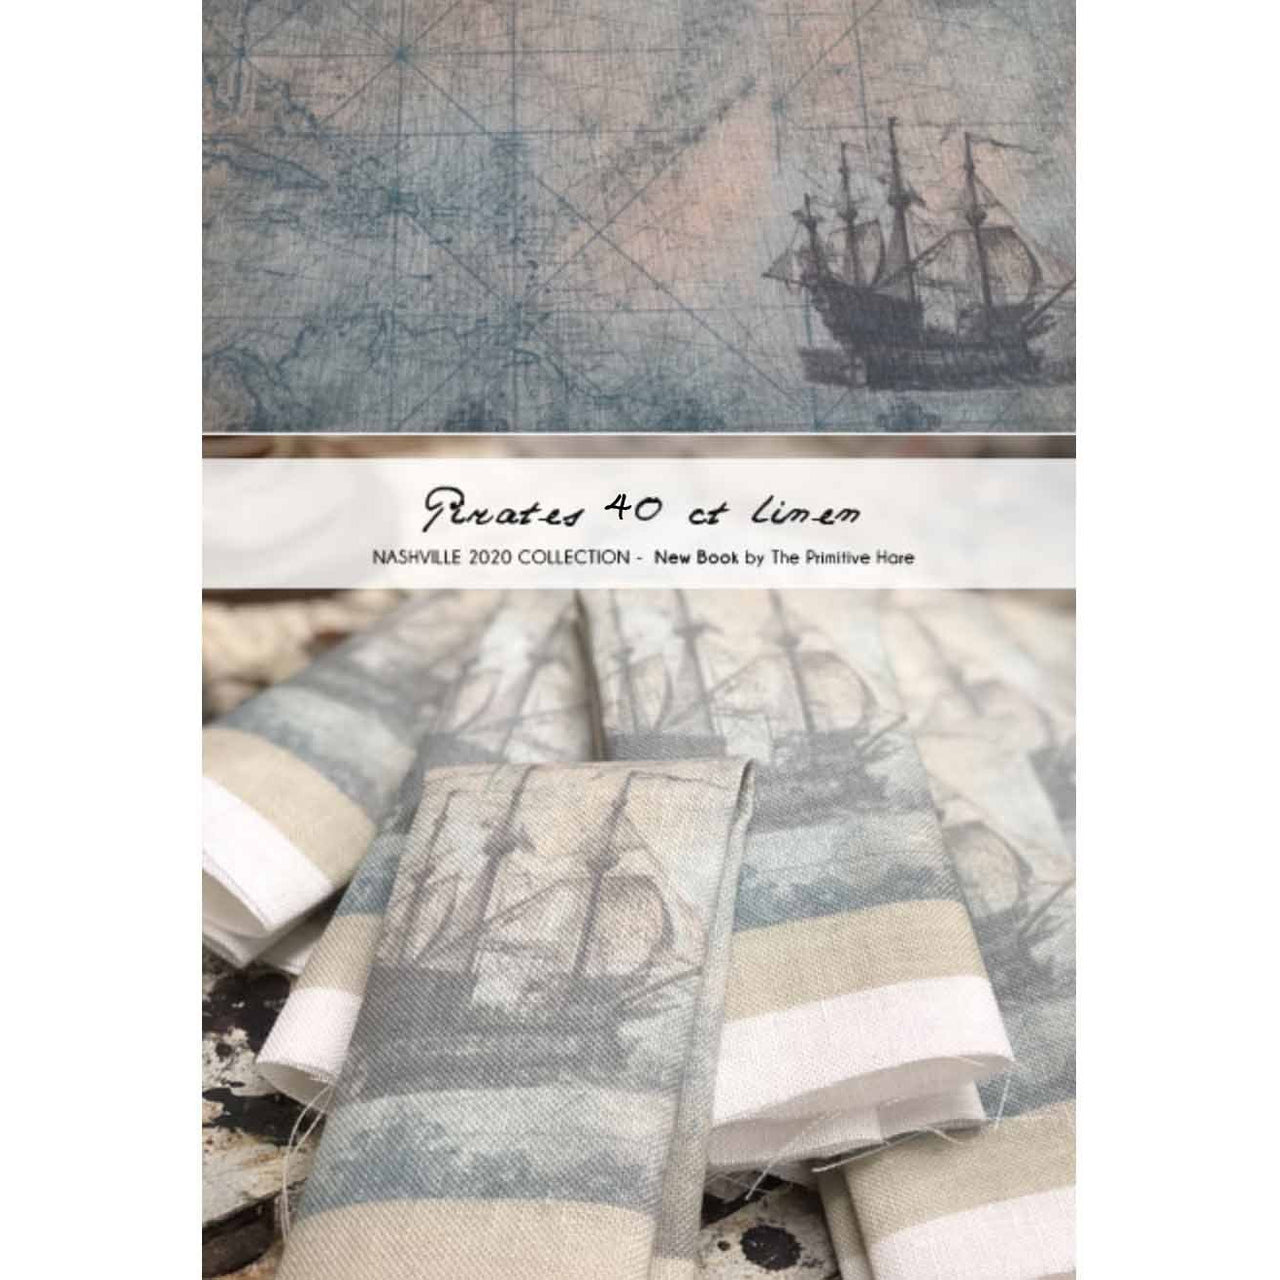 Pirates 40 ct. Linen